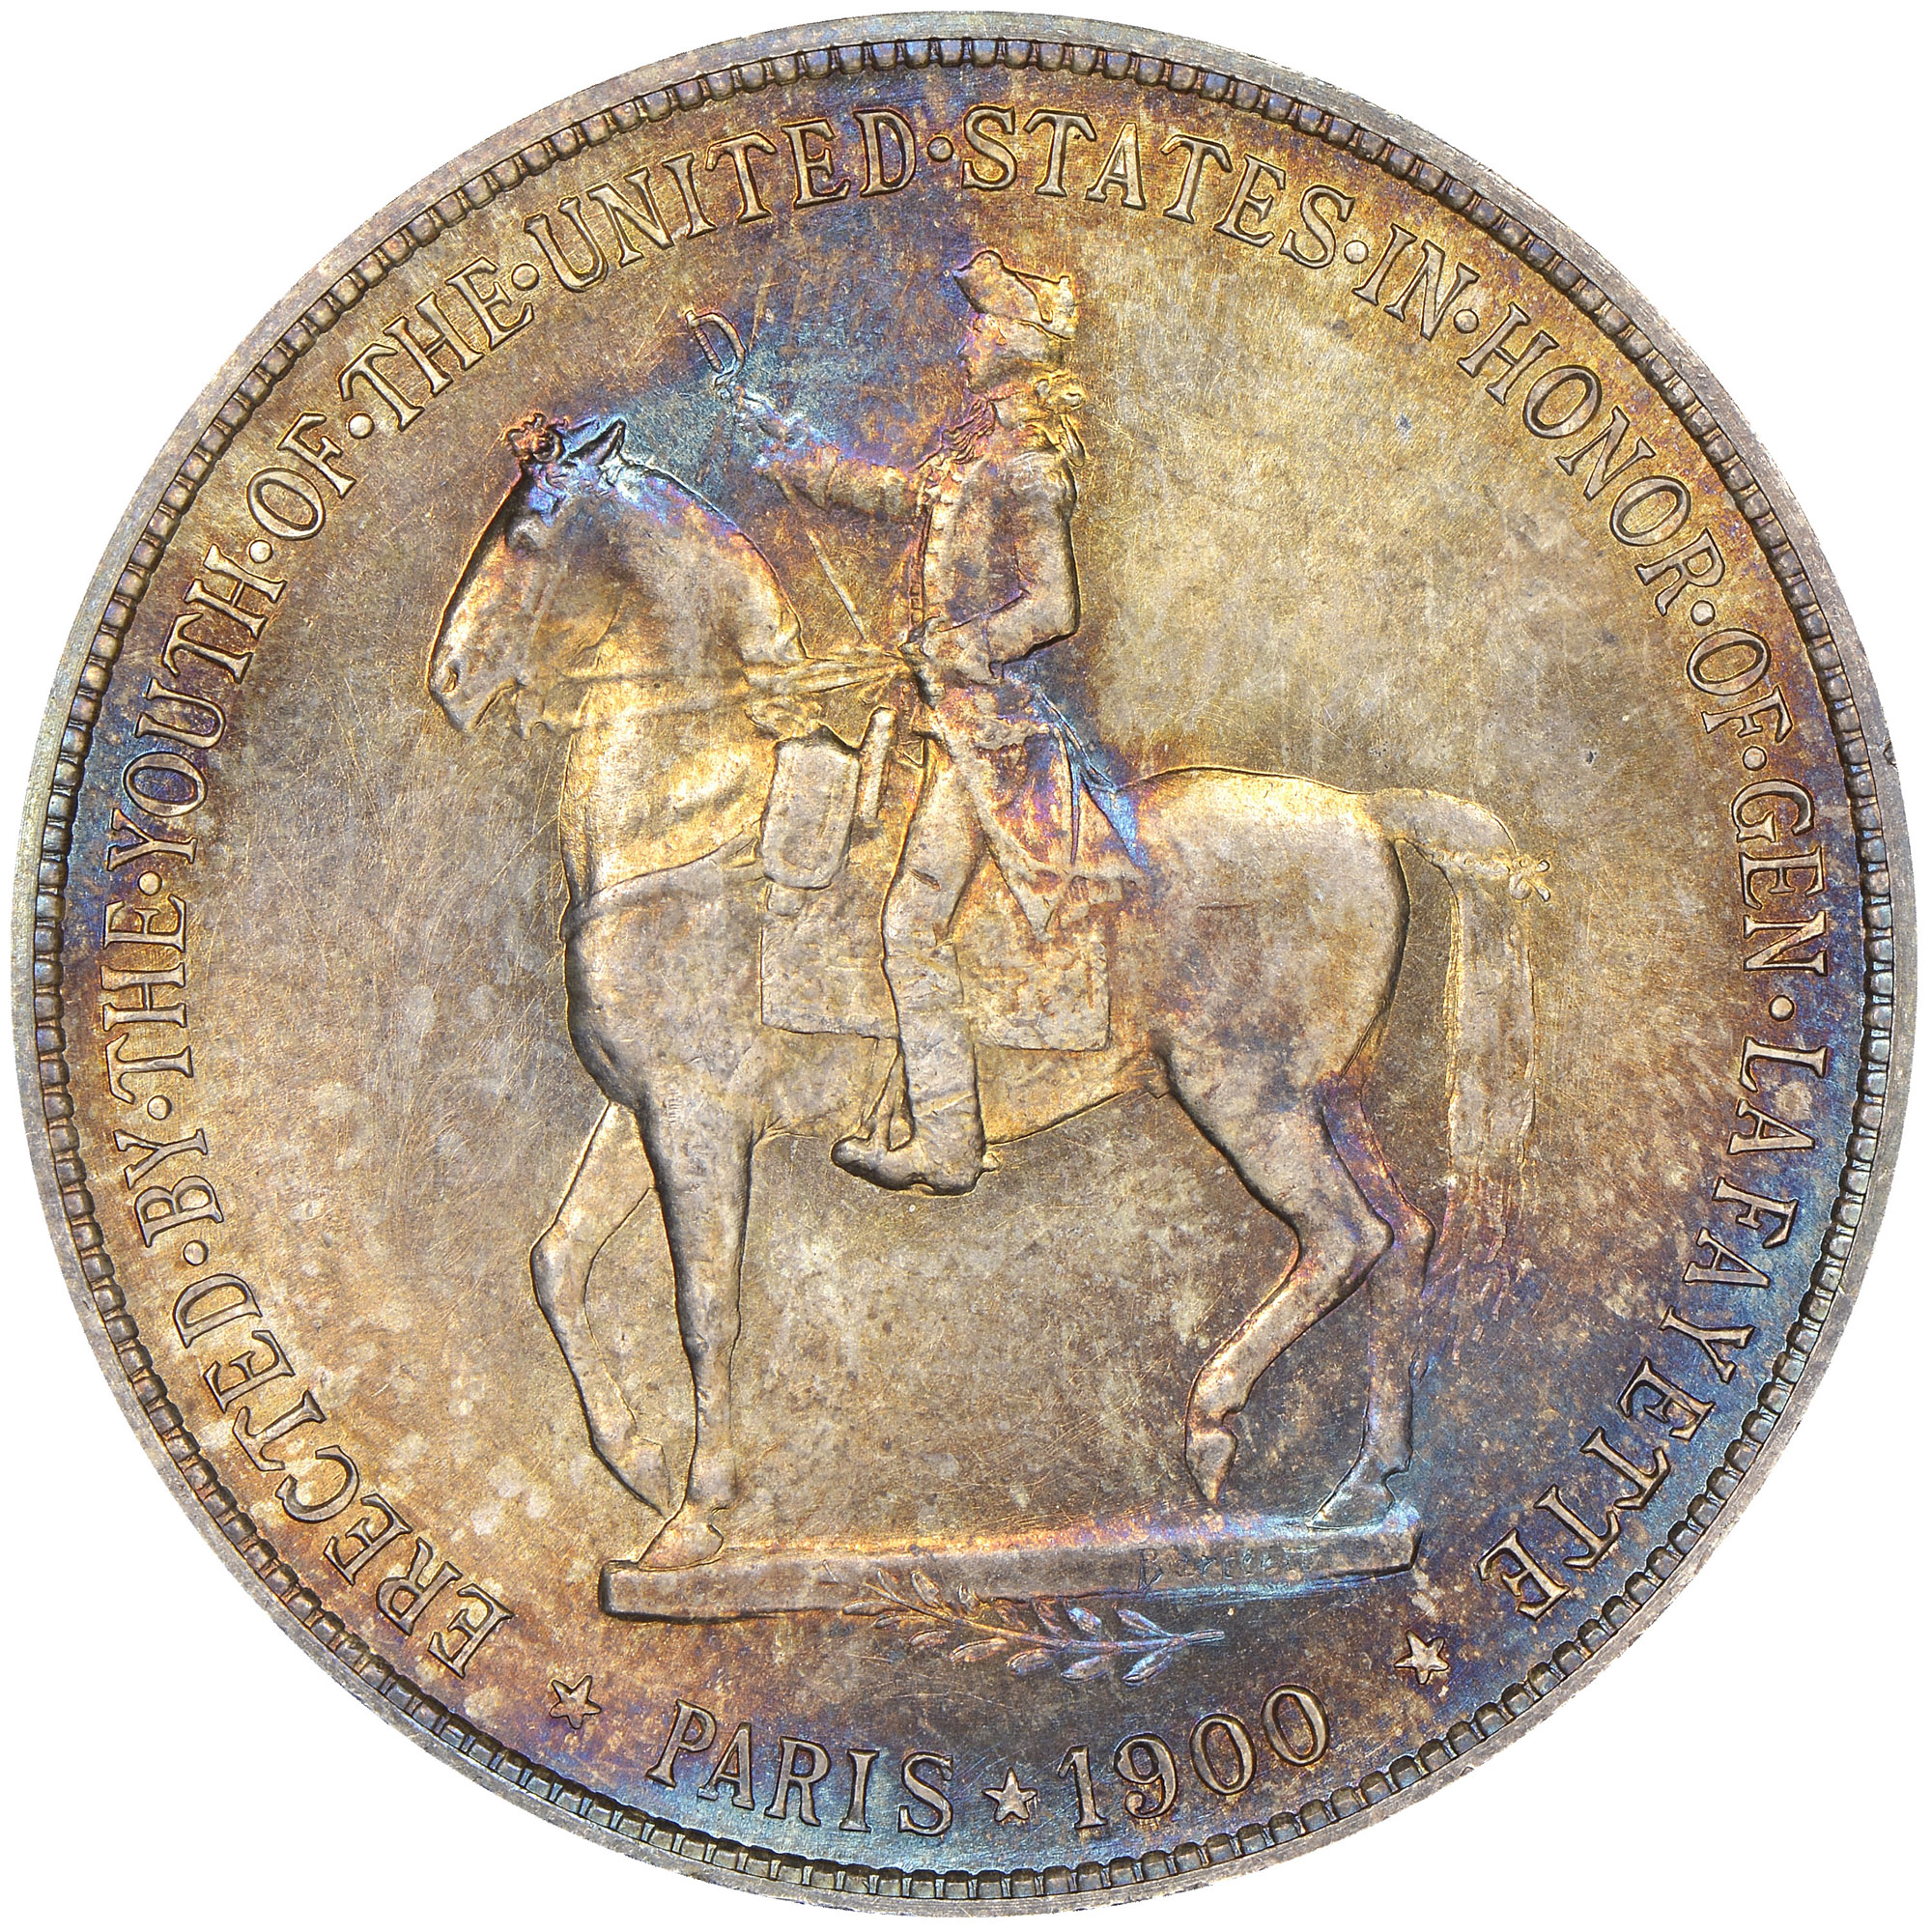 1900 lafayette s 1 ms silver commemoratives ngc